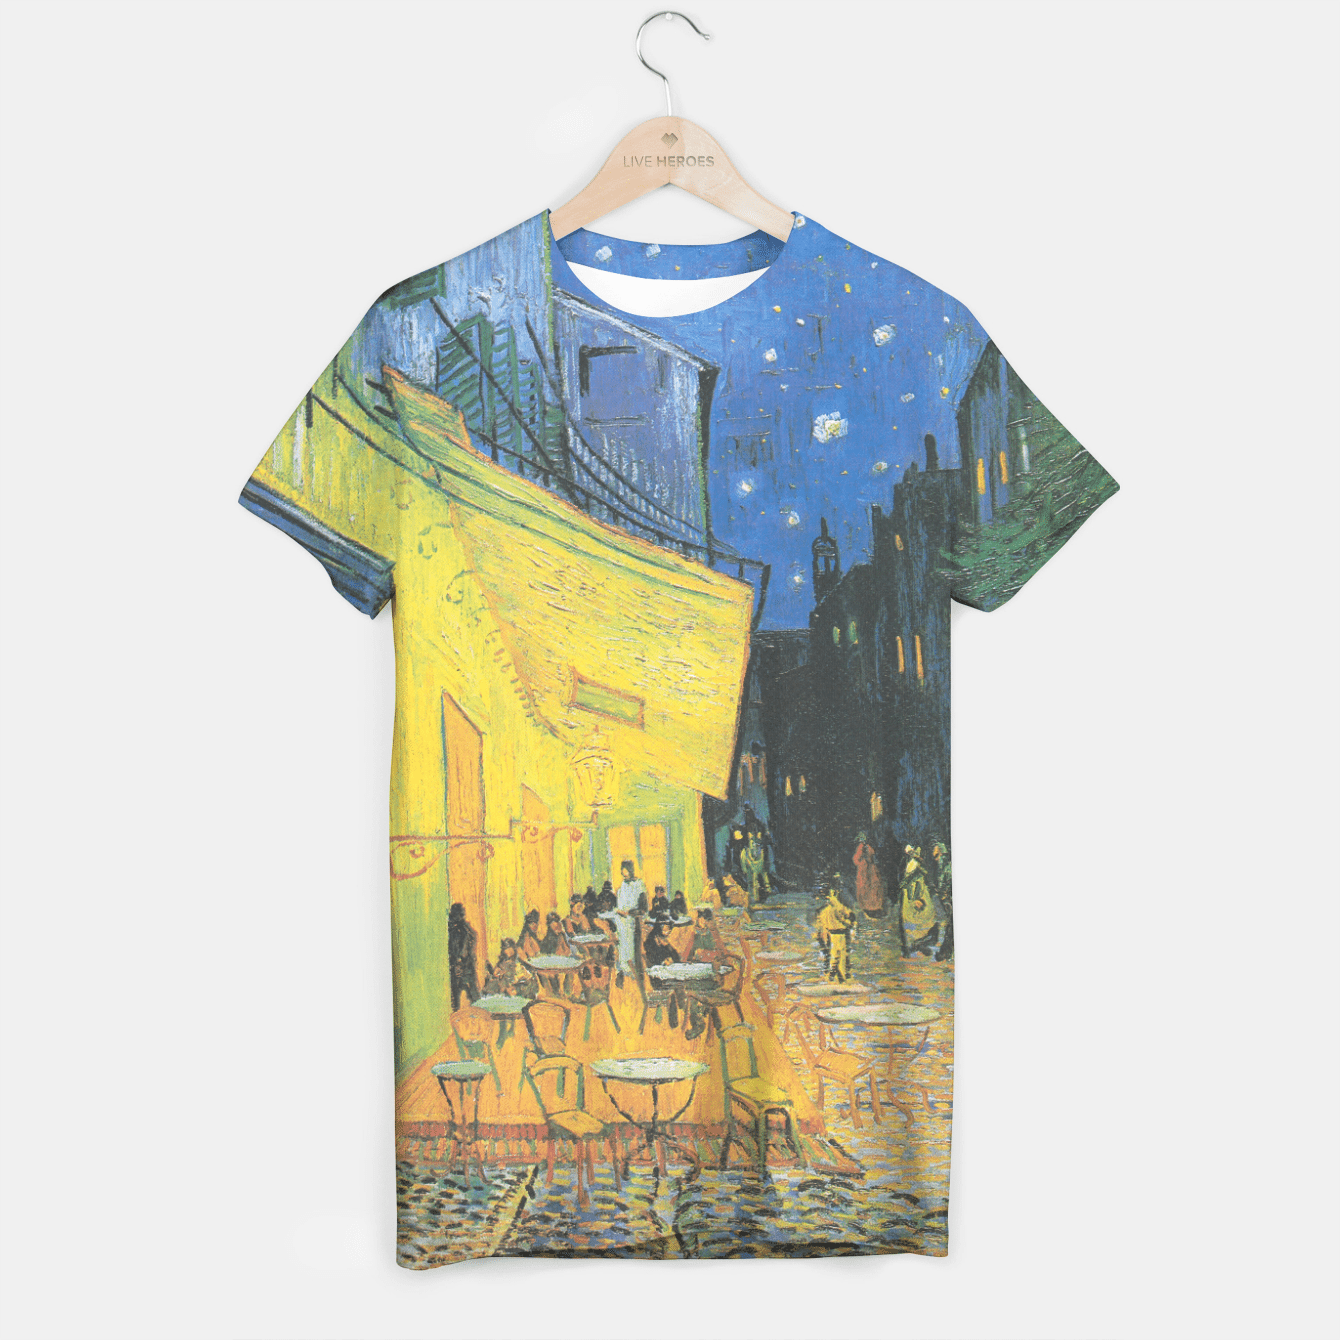 CAFE TERRACE AT NiGHT BY ViNCENT VAN GOGH T-shirt, Live Heroes